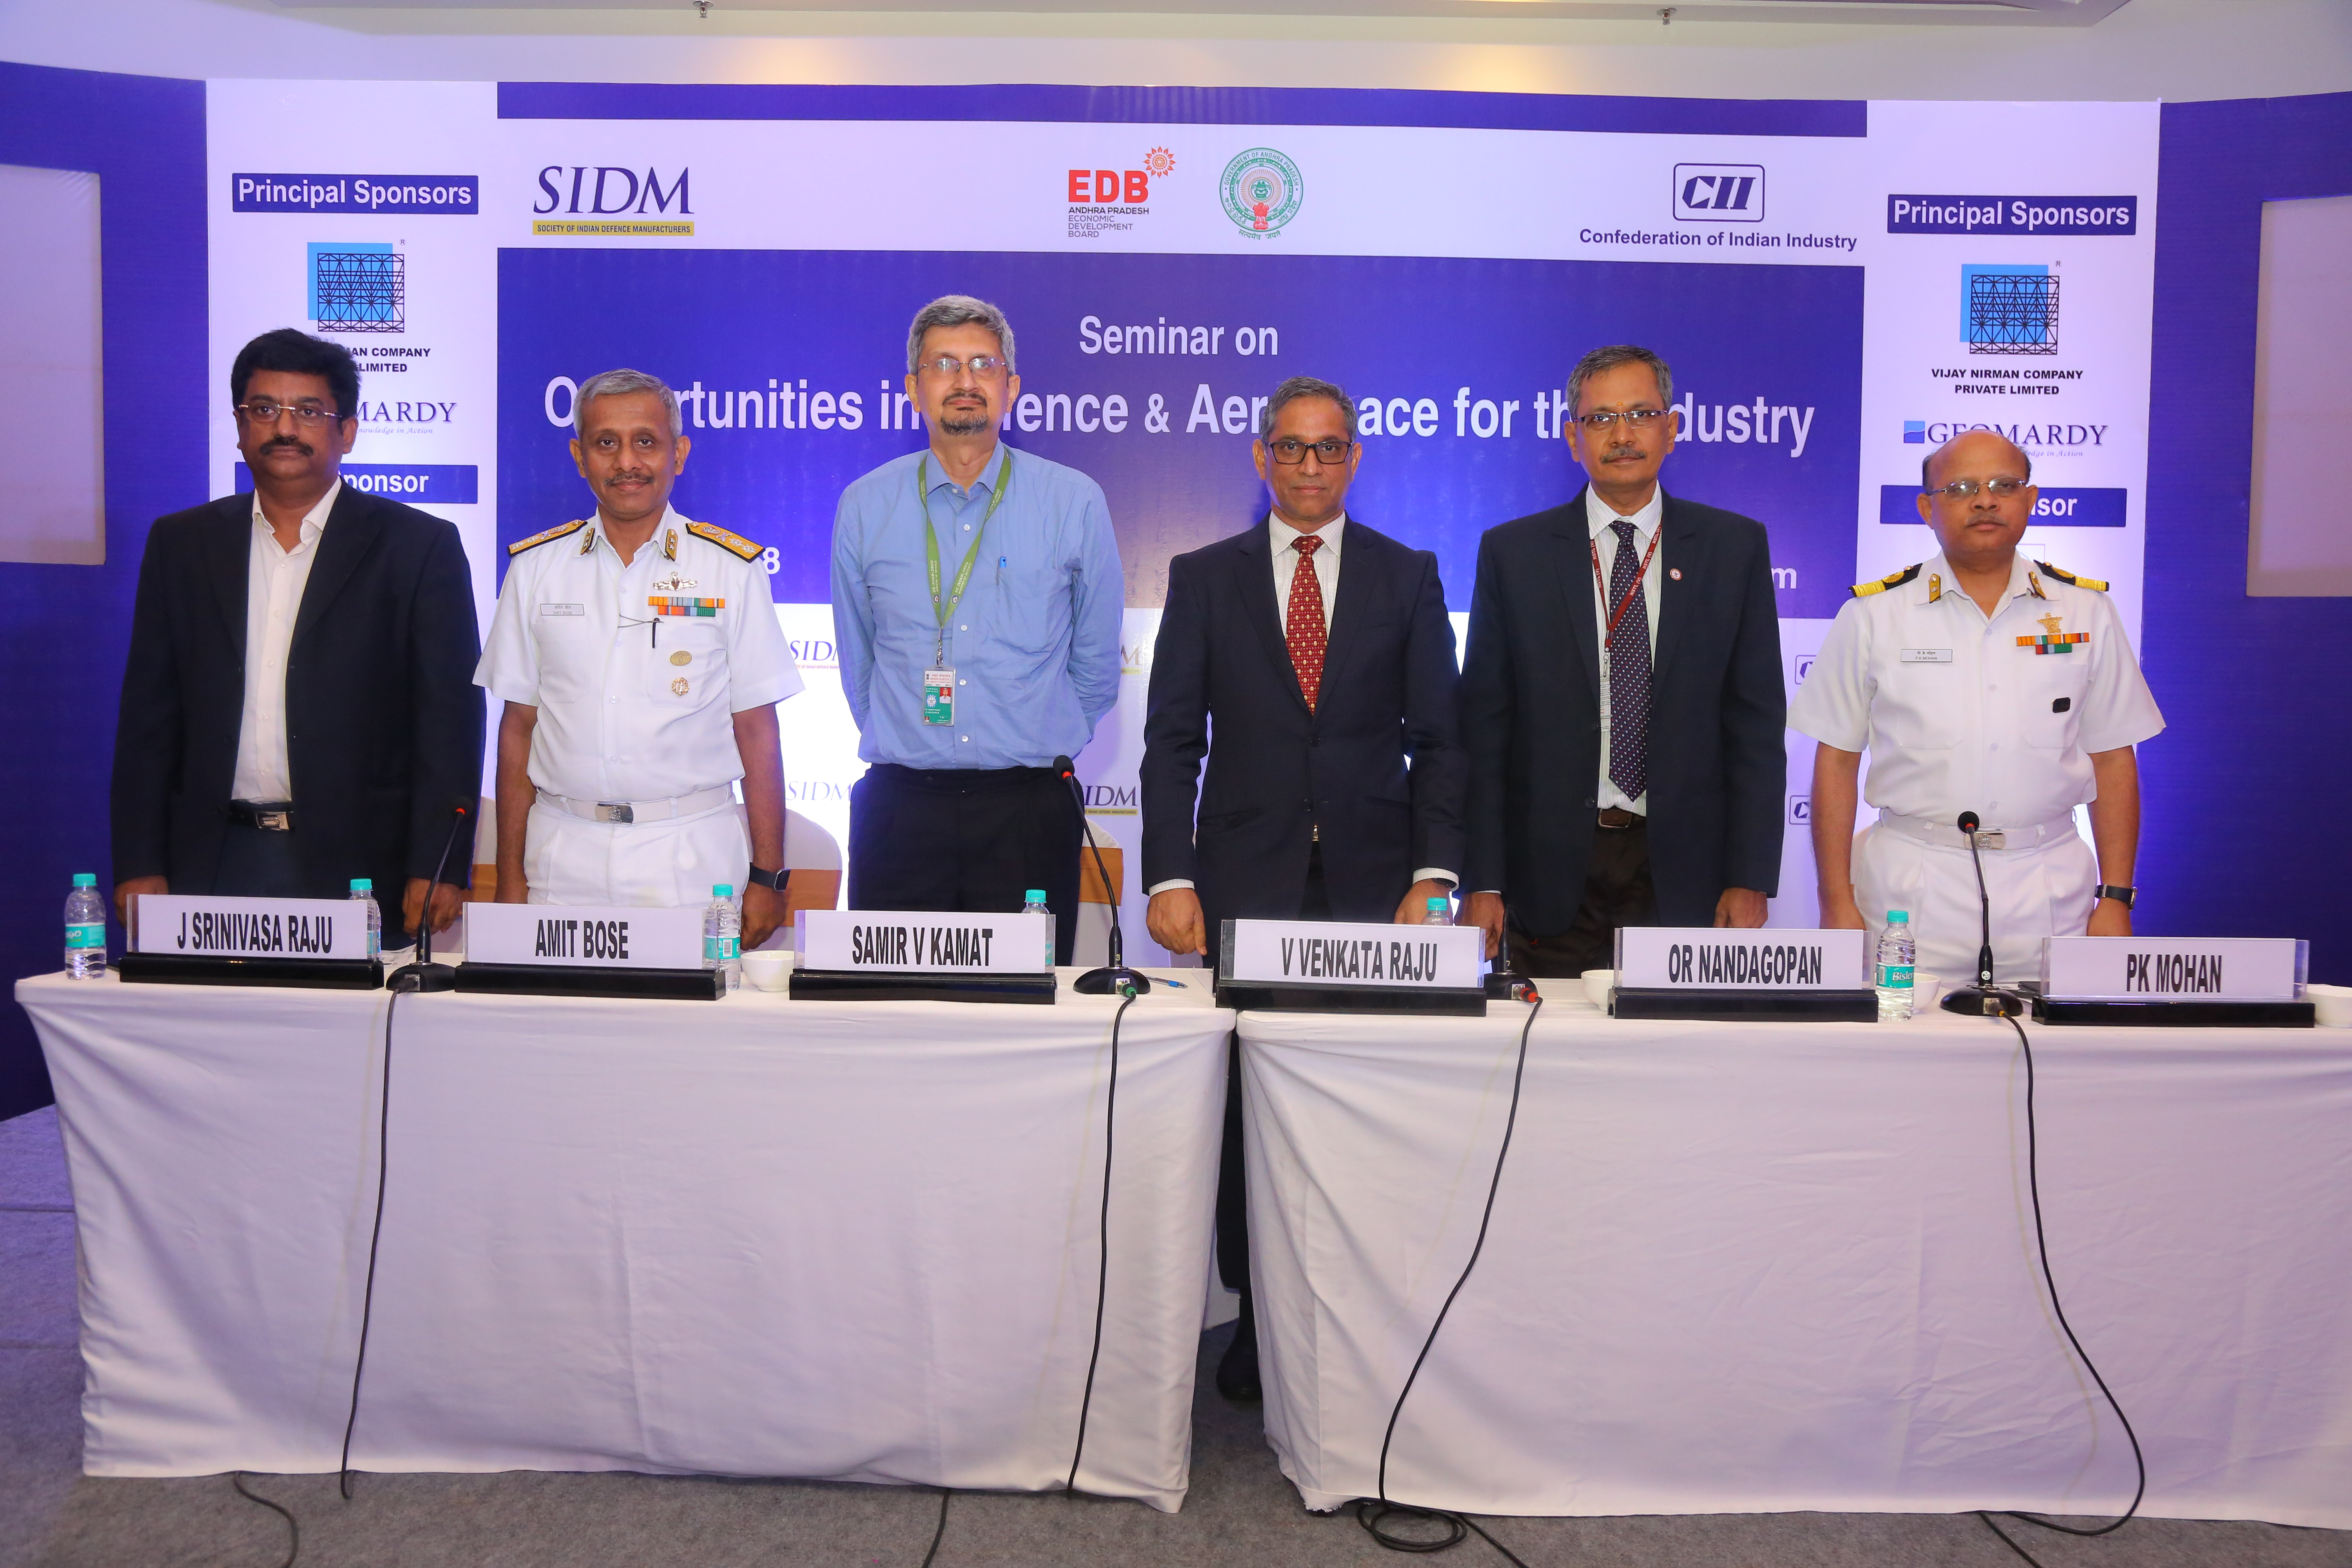 Panelists at the Seminar on 'Opportunities in Defence & Aerospace for Industry', Visakhapatnam, 21 June 2018